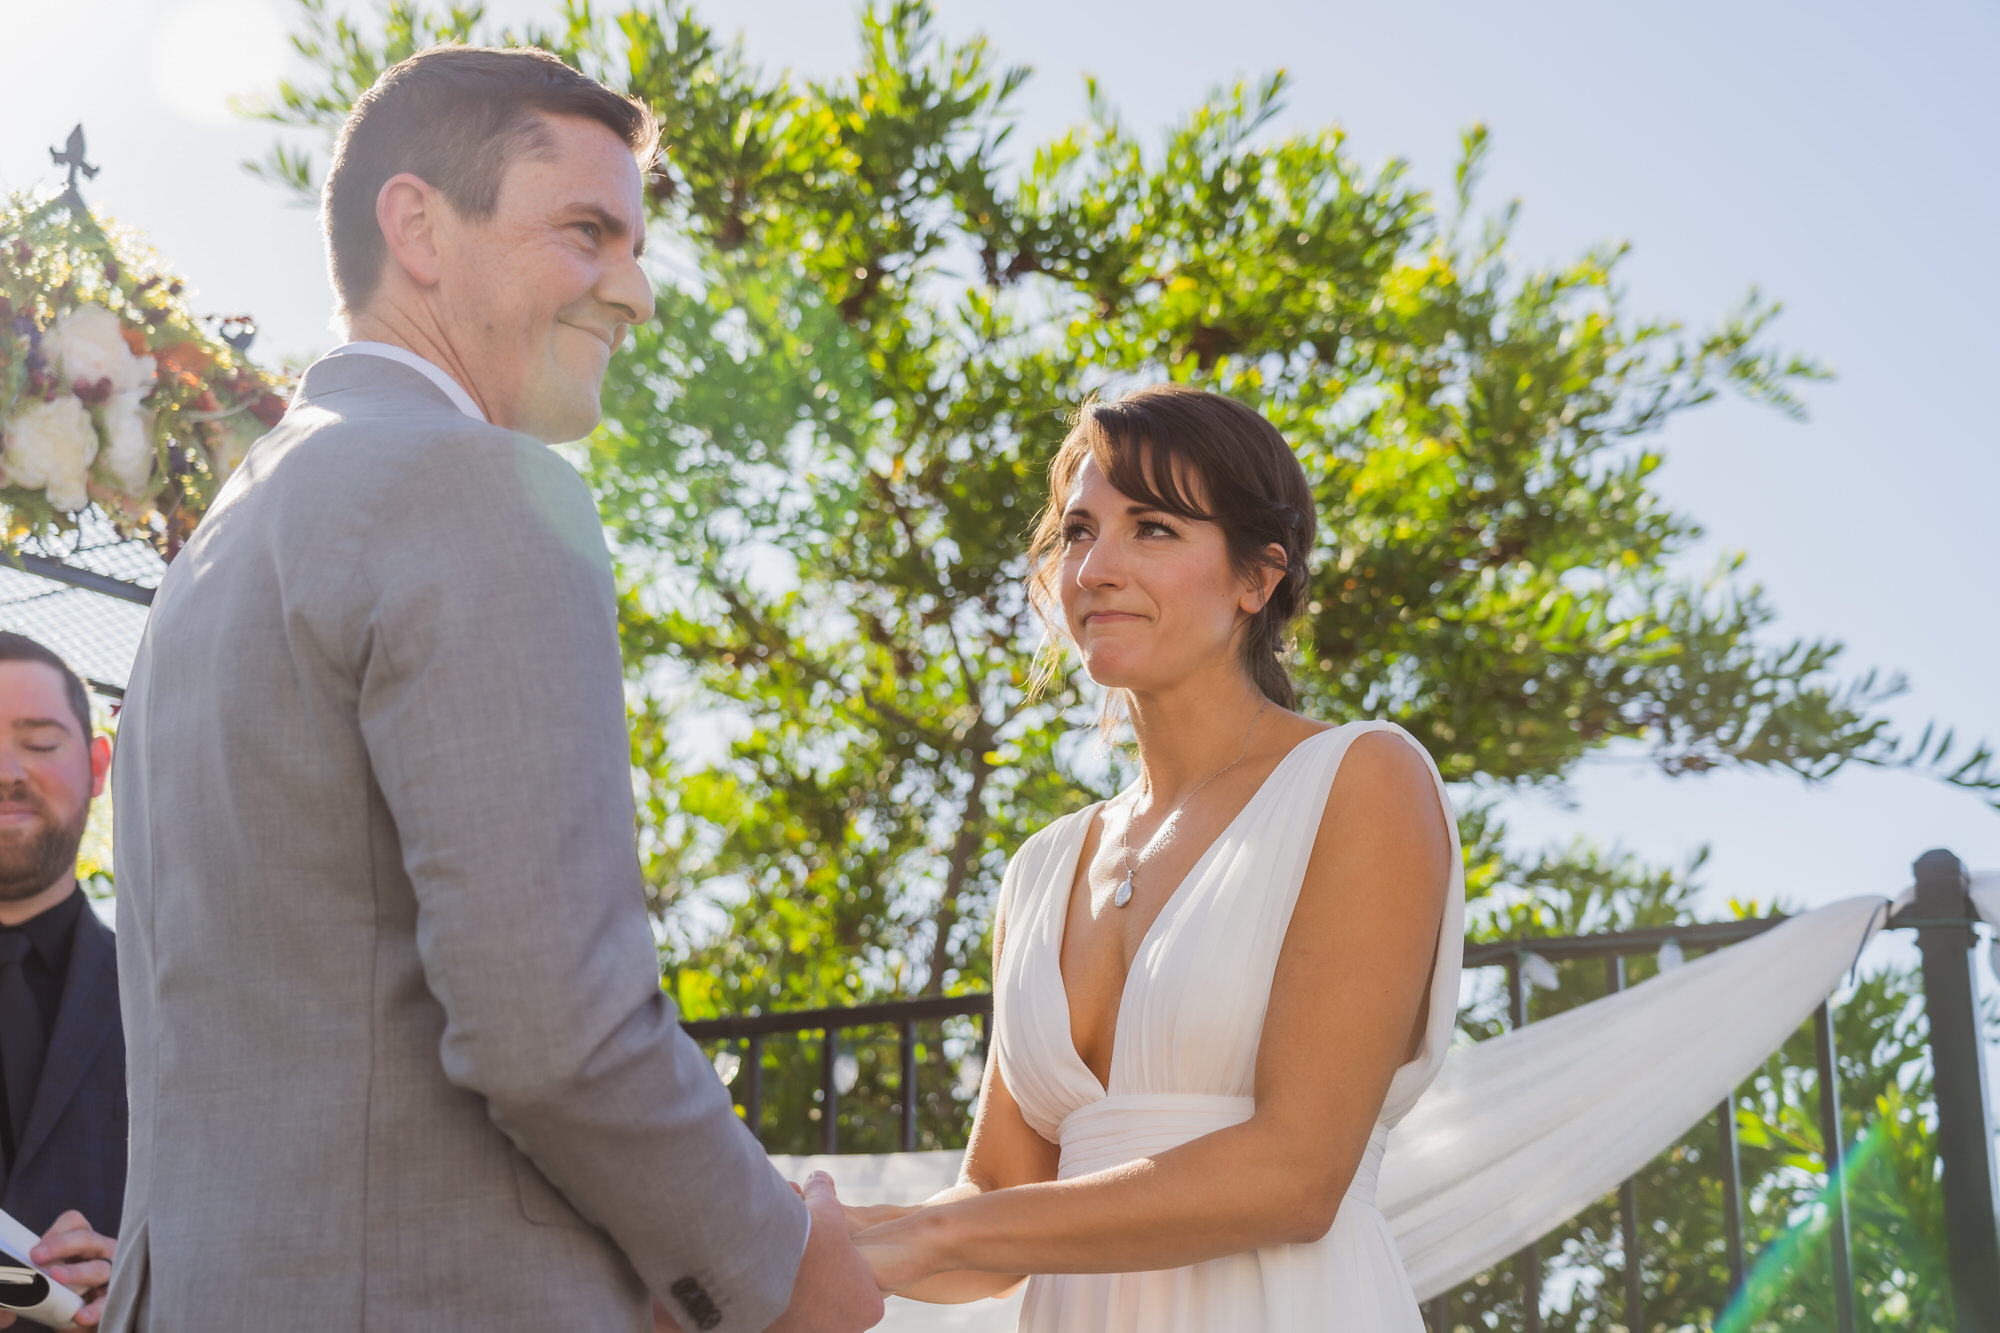 carlsbad_wedding_013